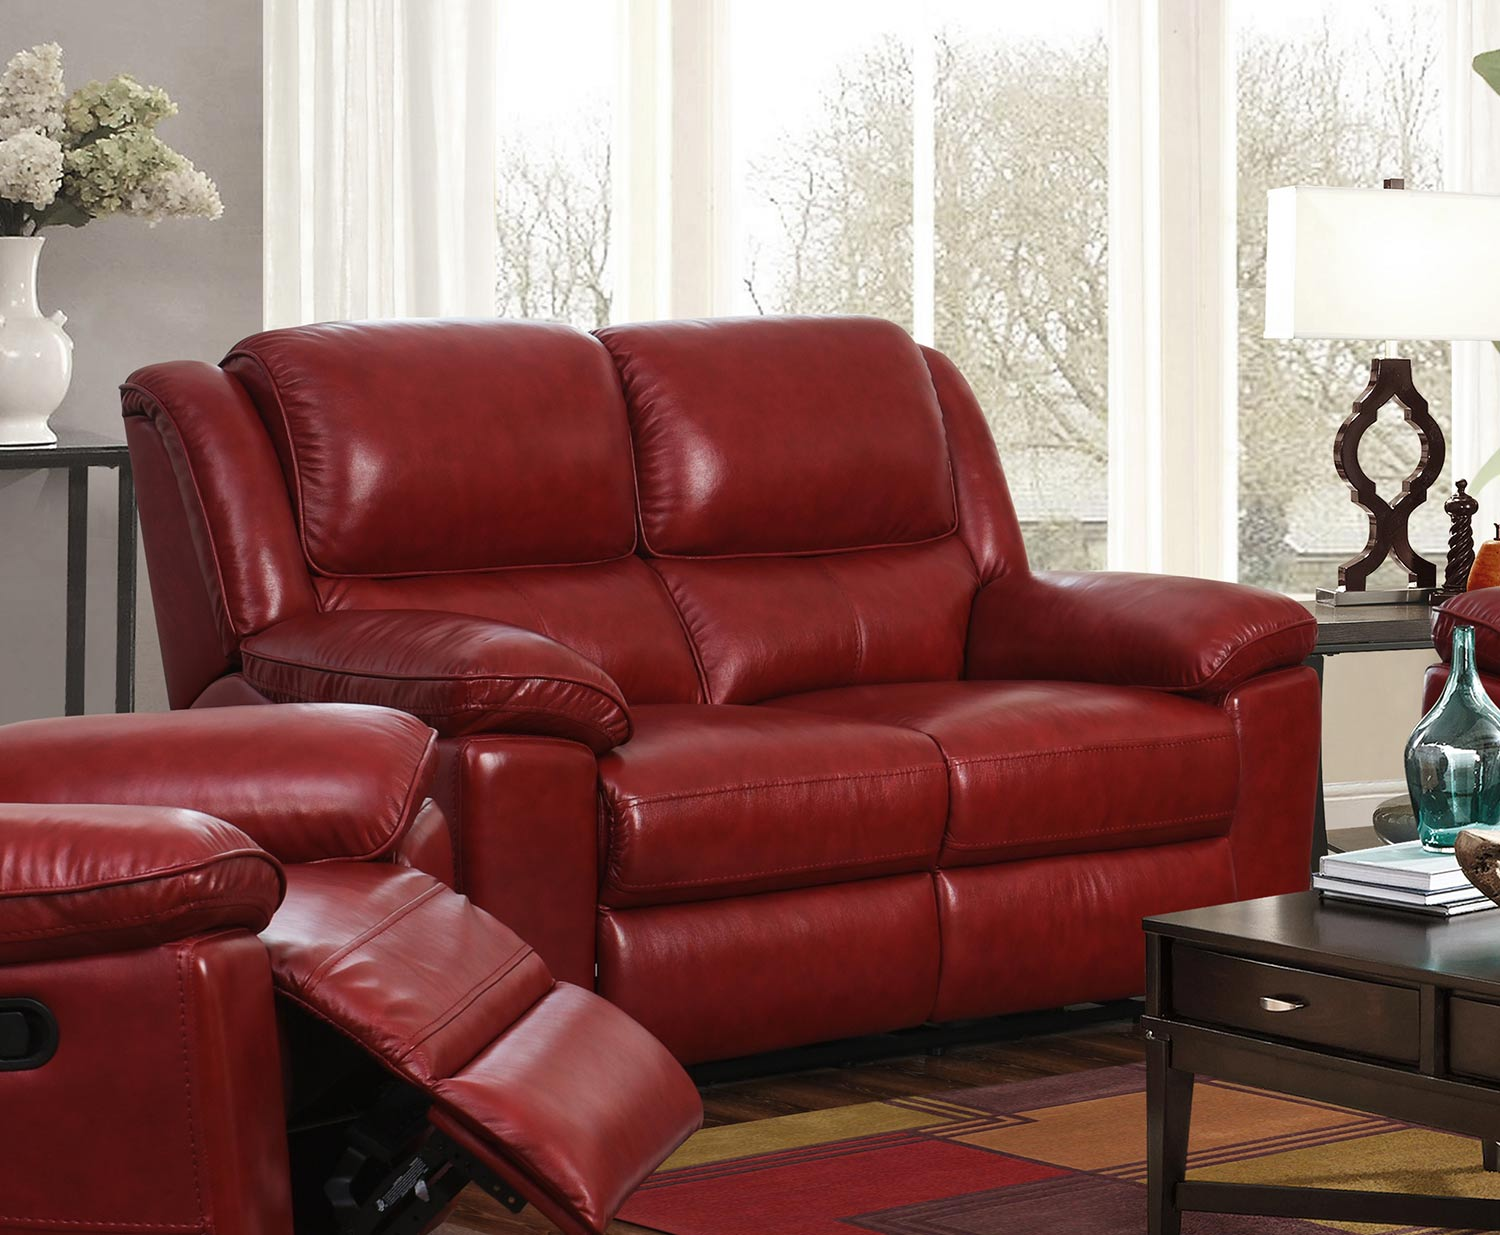 Barcalounger Laguna Power Reclining Loveseat - Contact Red/Leather Match